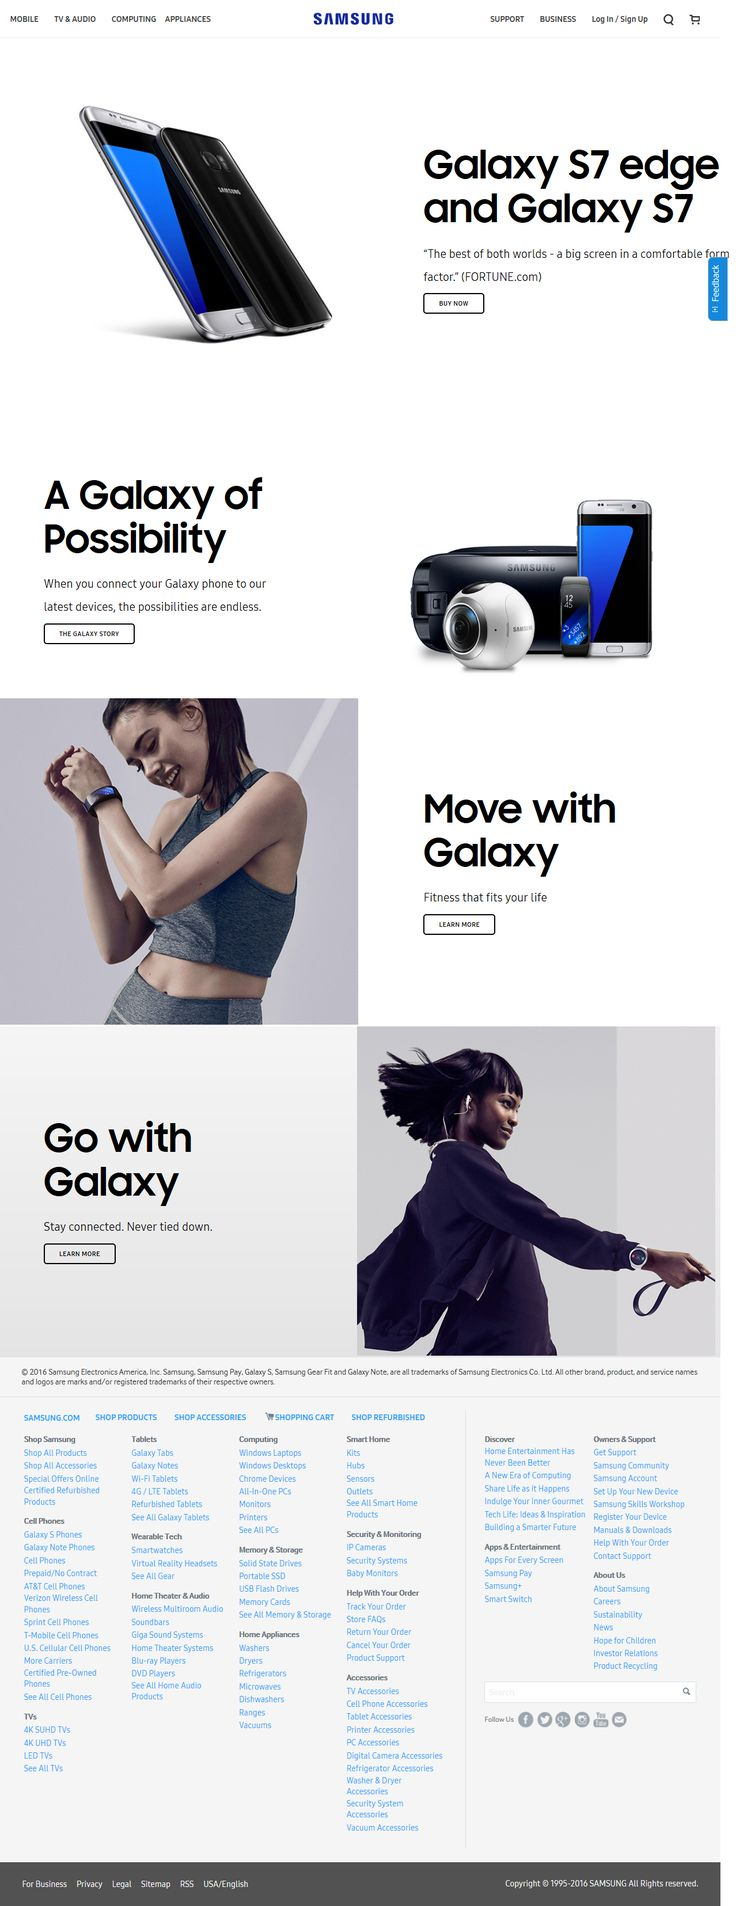 Samsung website in 2016